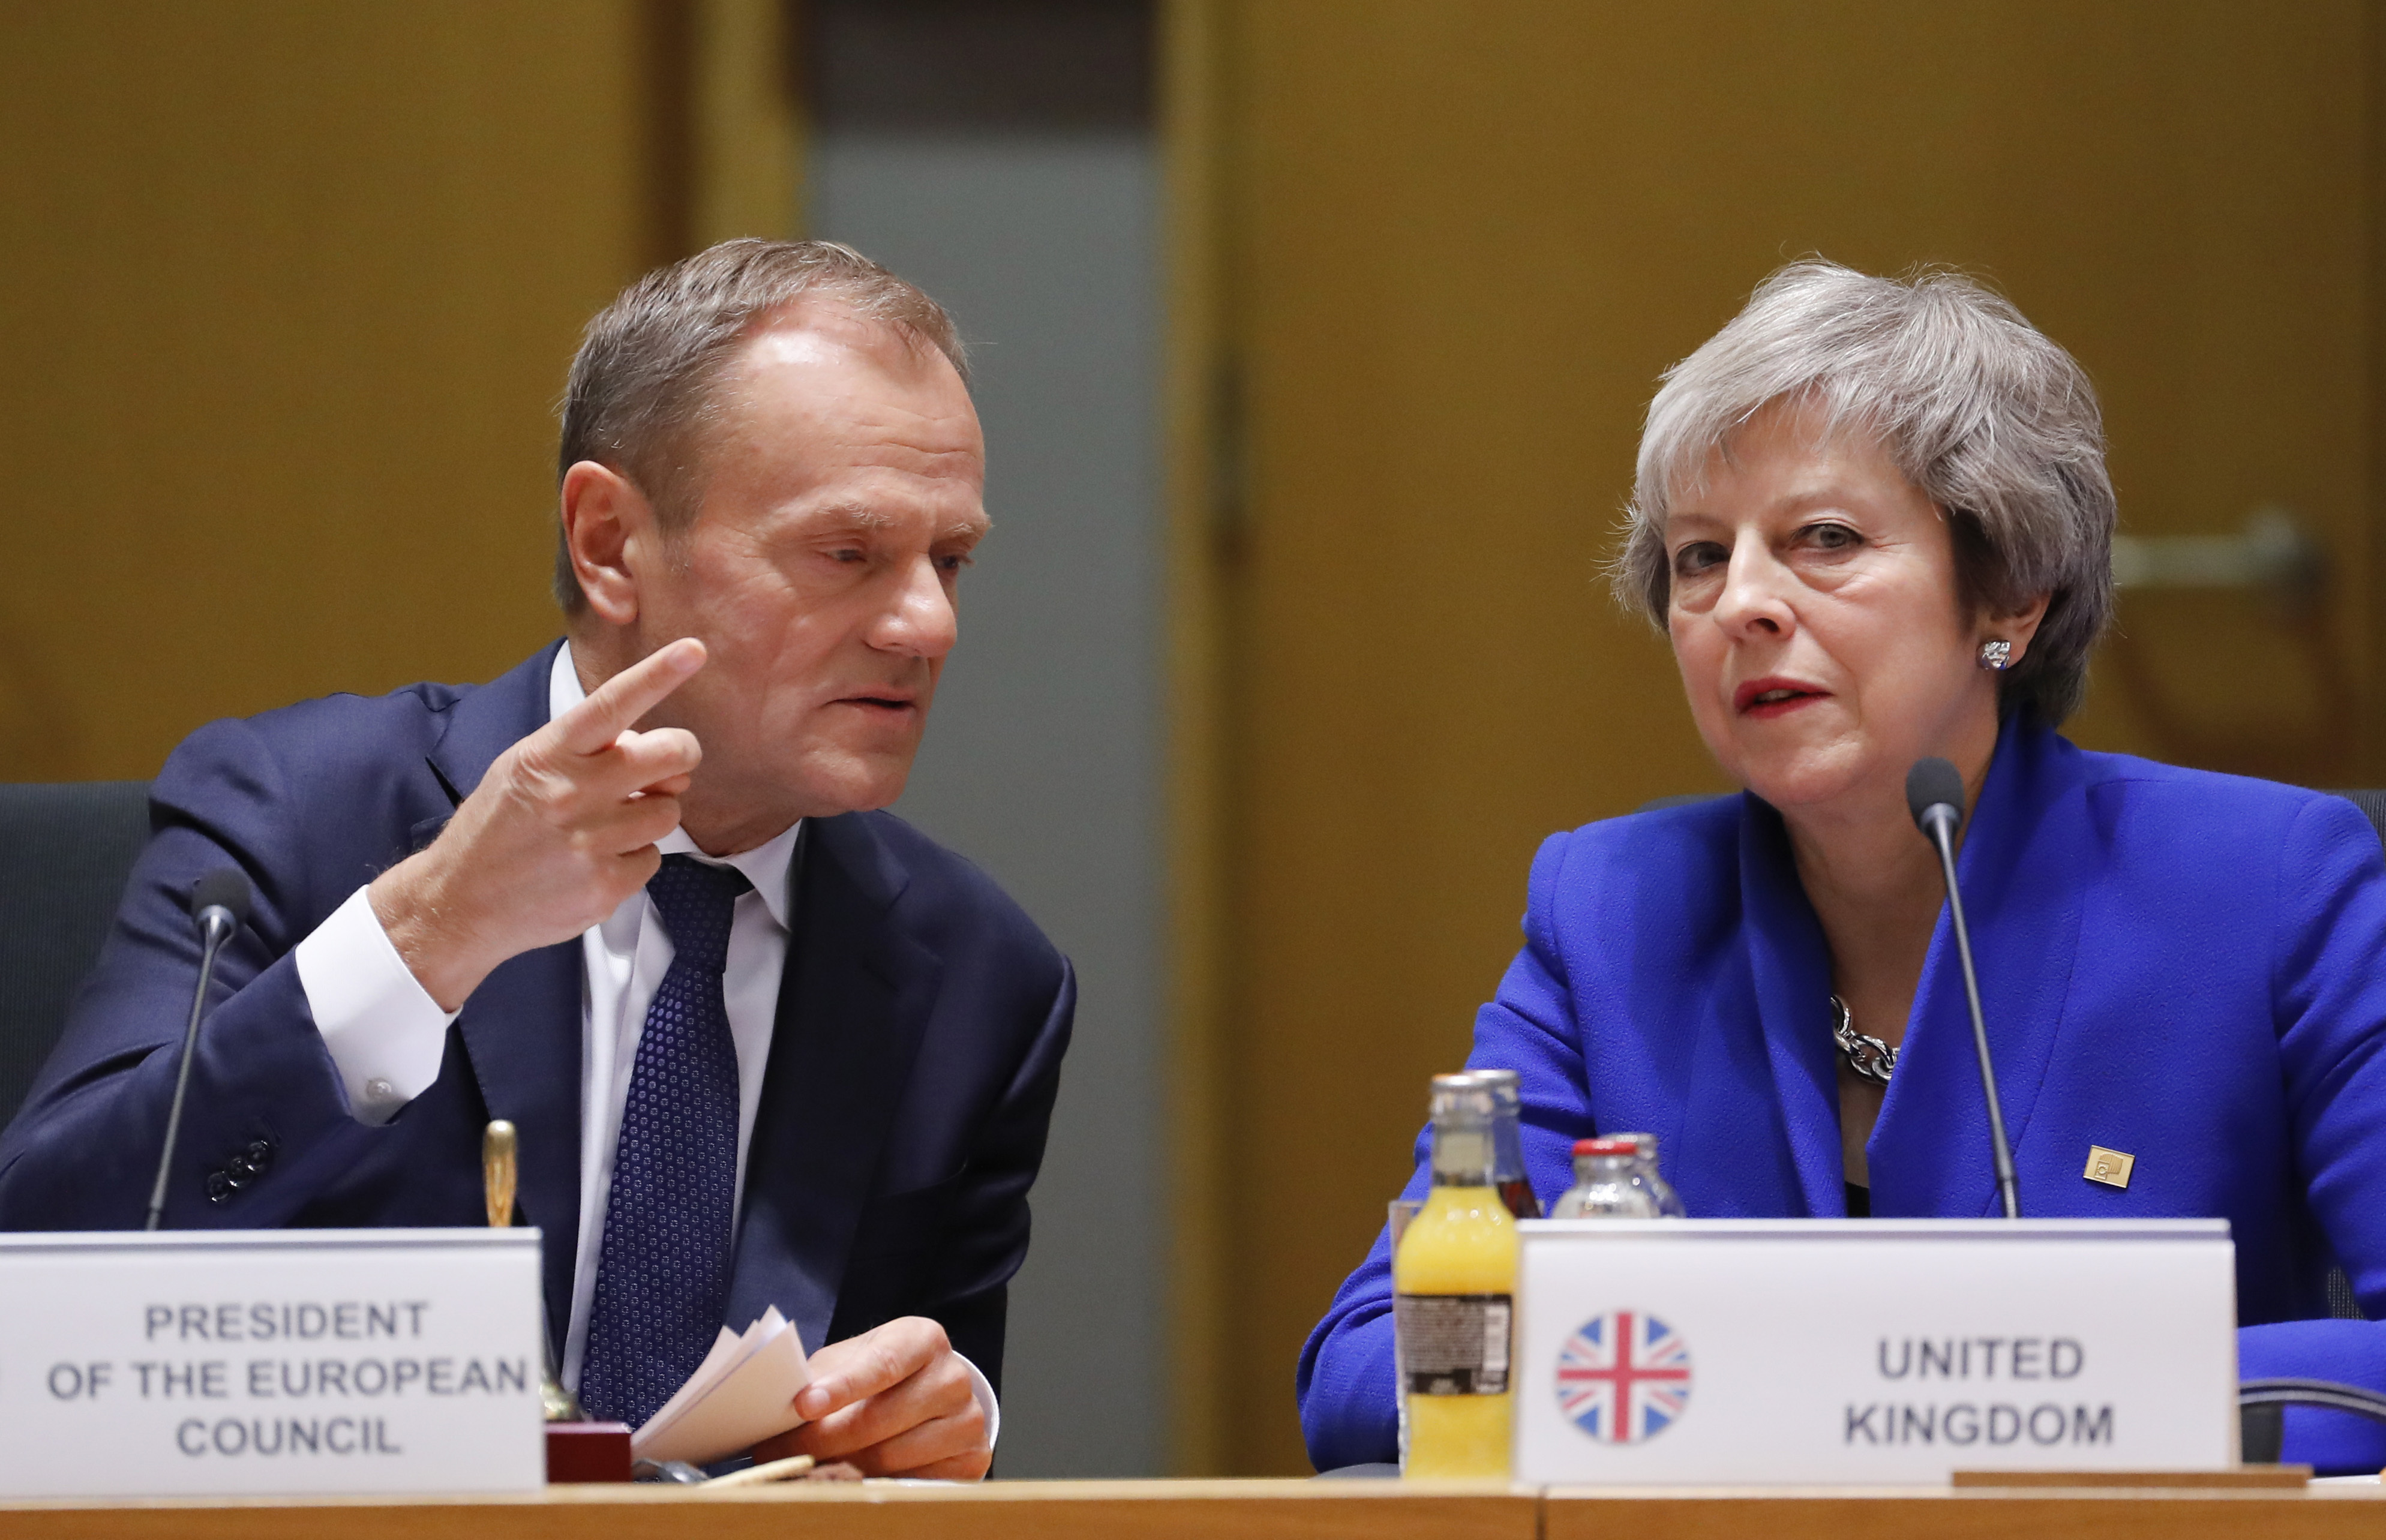 British Prime Minister Theresa May and European Council President Donald Tusk attend a round table meeting at an EU summit in Brussels, Nov. 25, 2018.